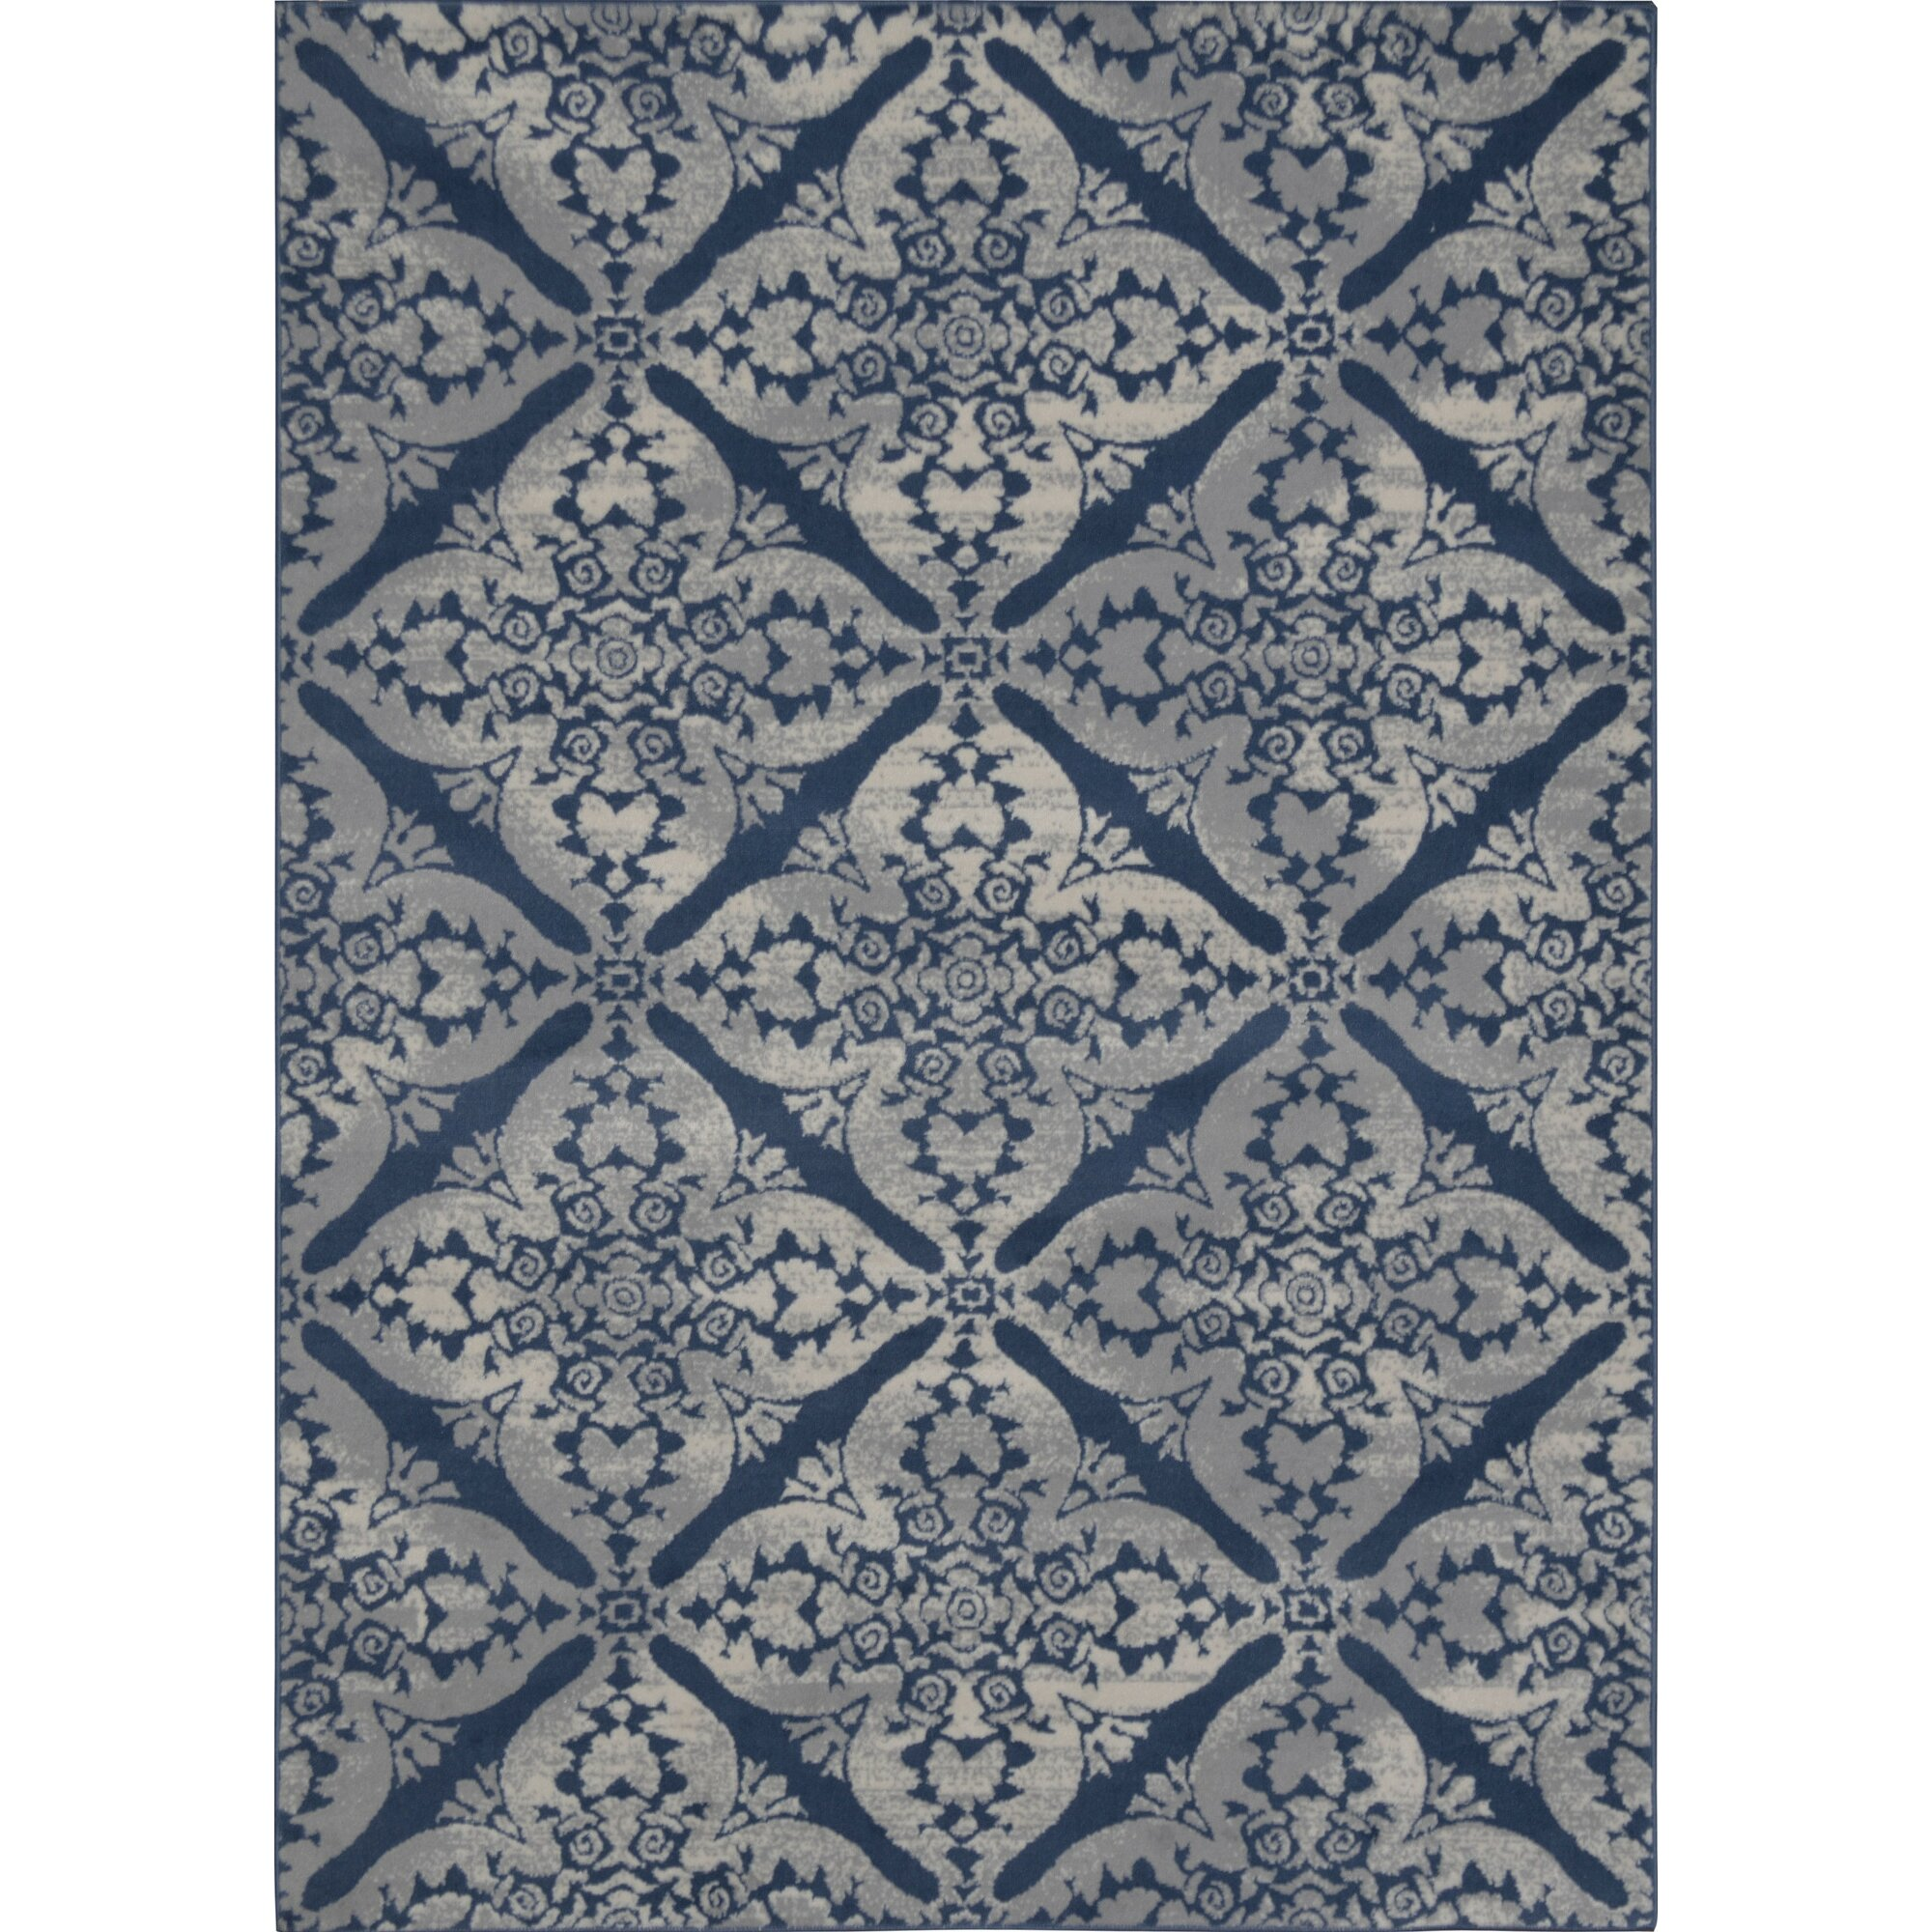 Jennifer Blue u0026 Gray Hand-Tufted Area Rug